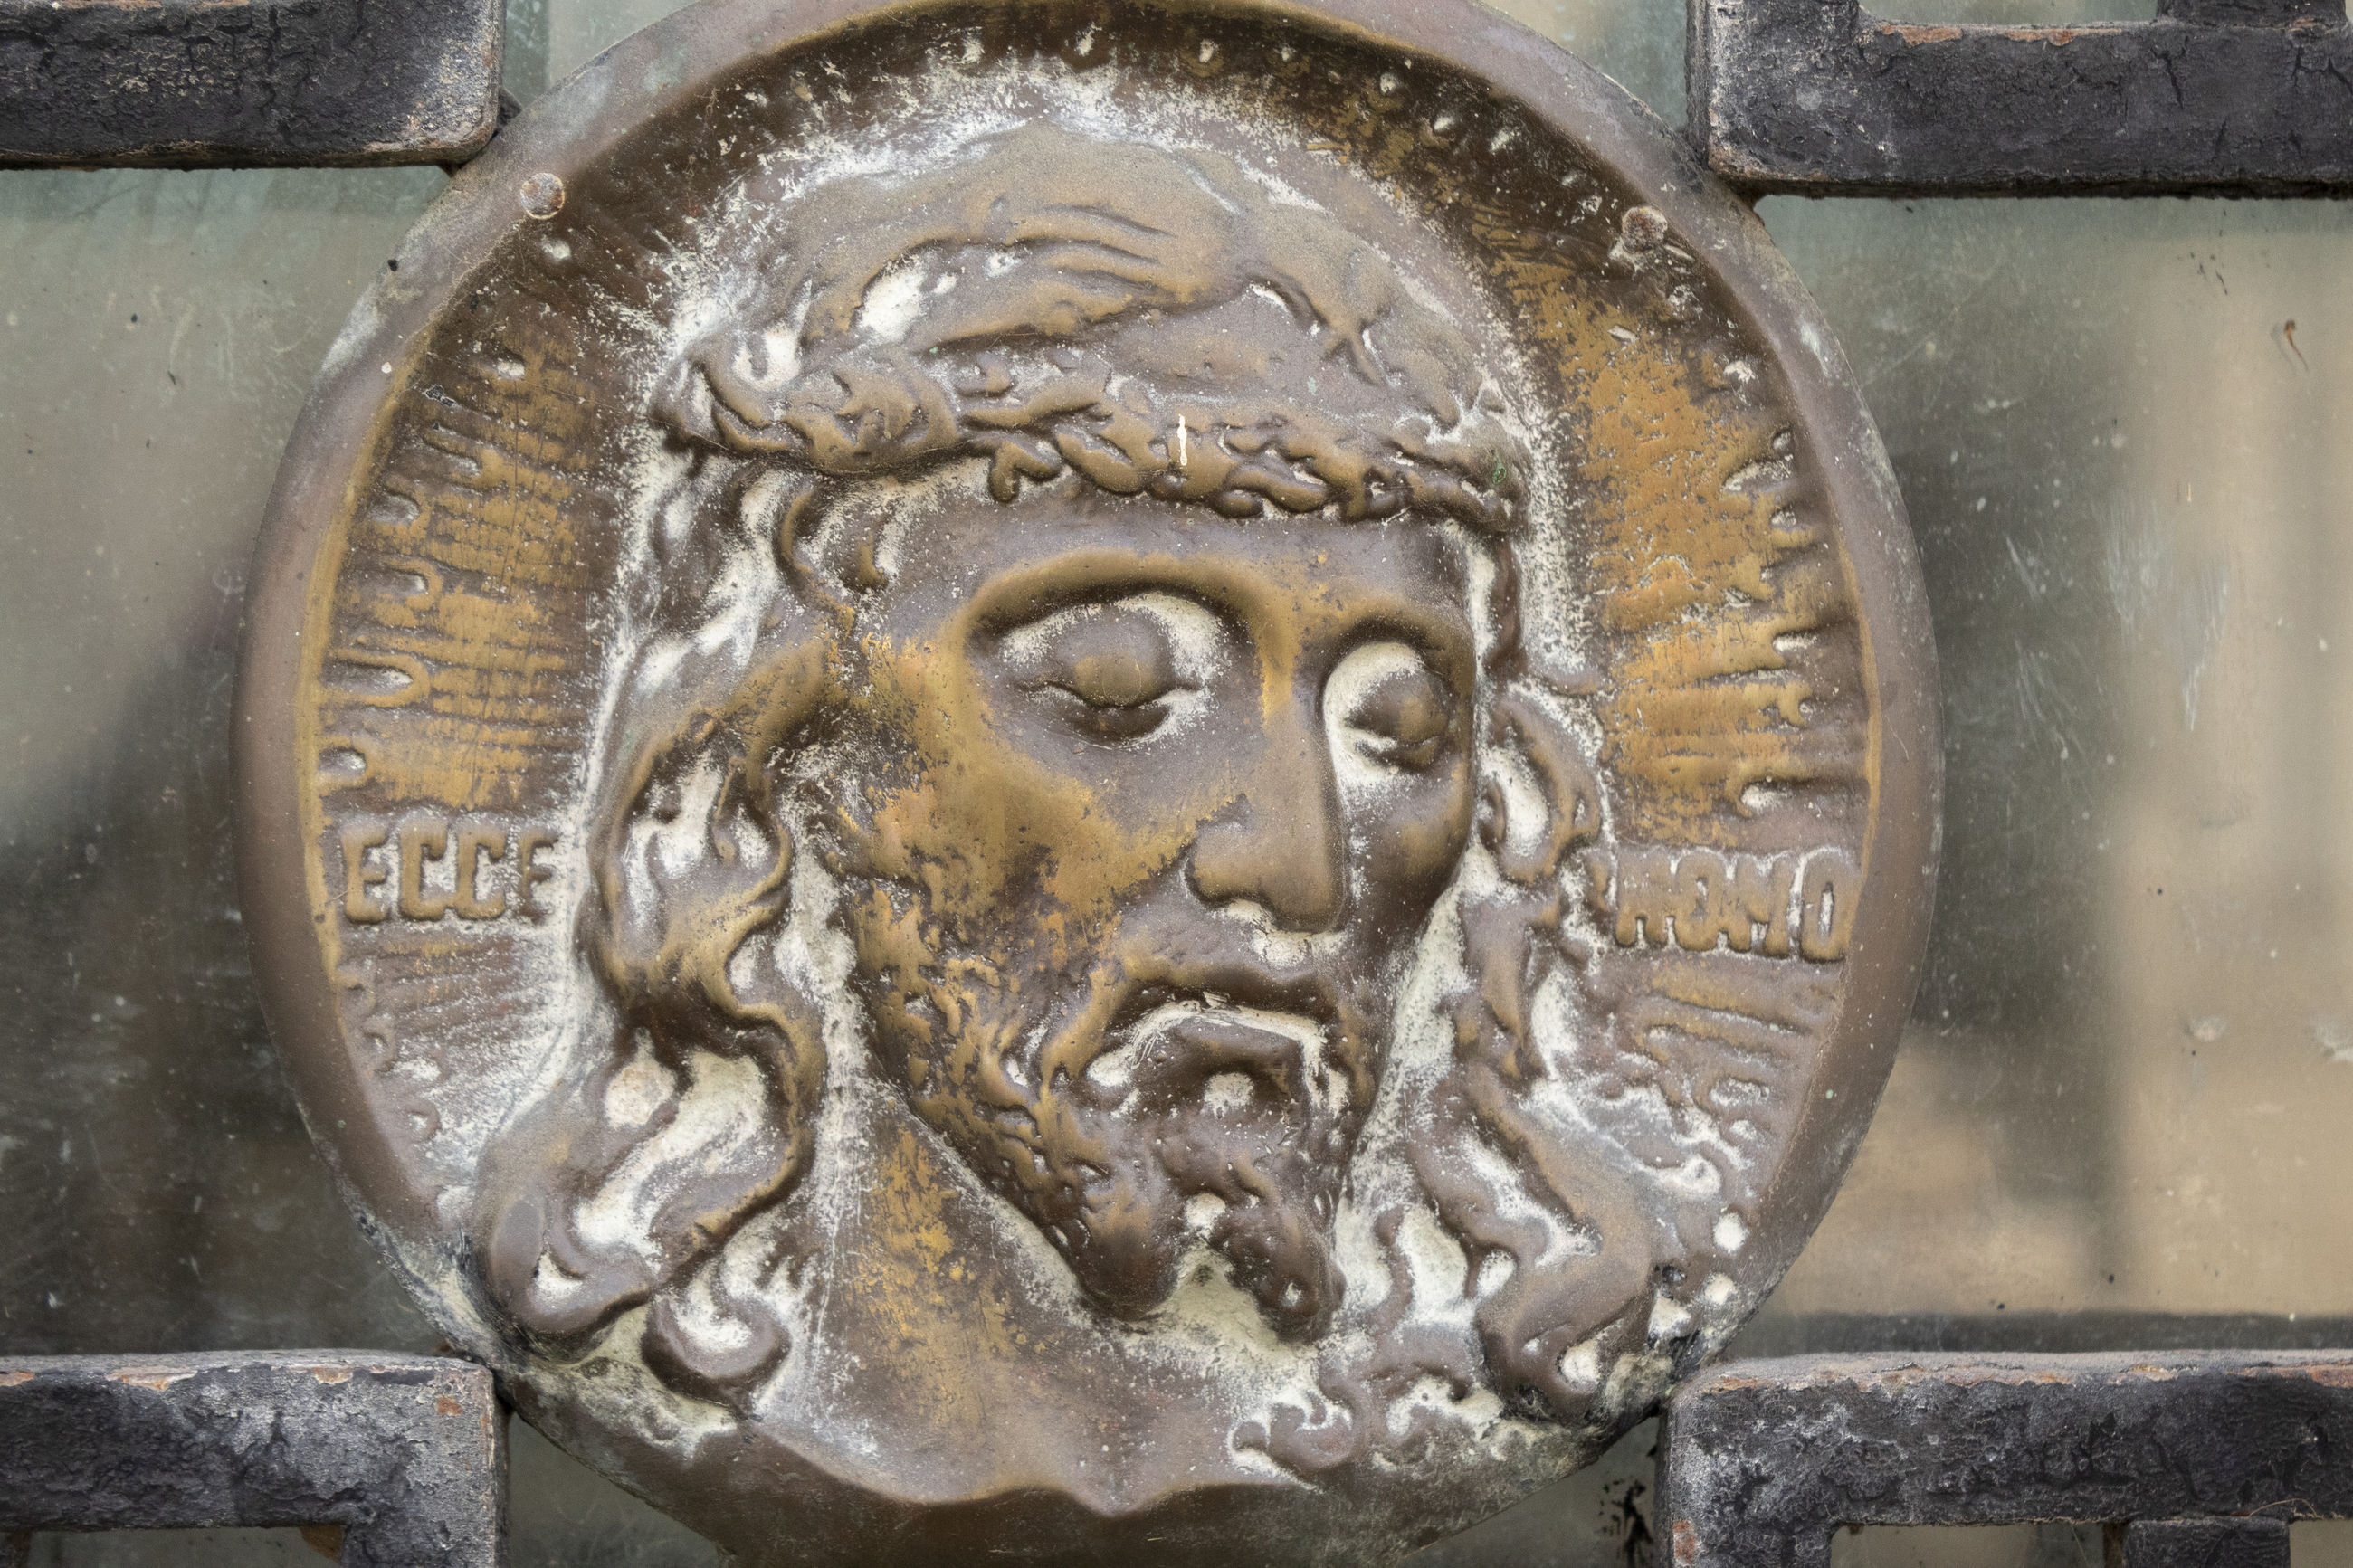 art and craft, craft, sculpture, representation, close-up, carving - craft product, creativity, no people, architecture, human representation, metal, history, indoors, solid, the past, stone, stone material, statue, bas relief, silver colored